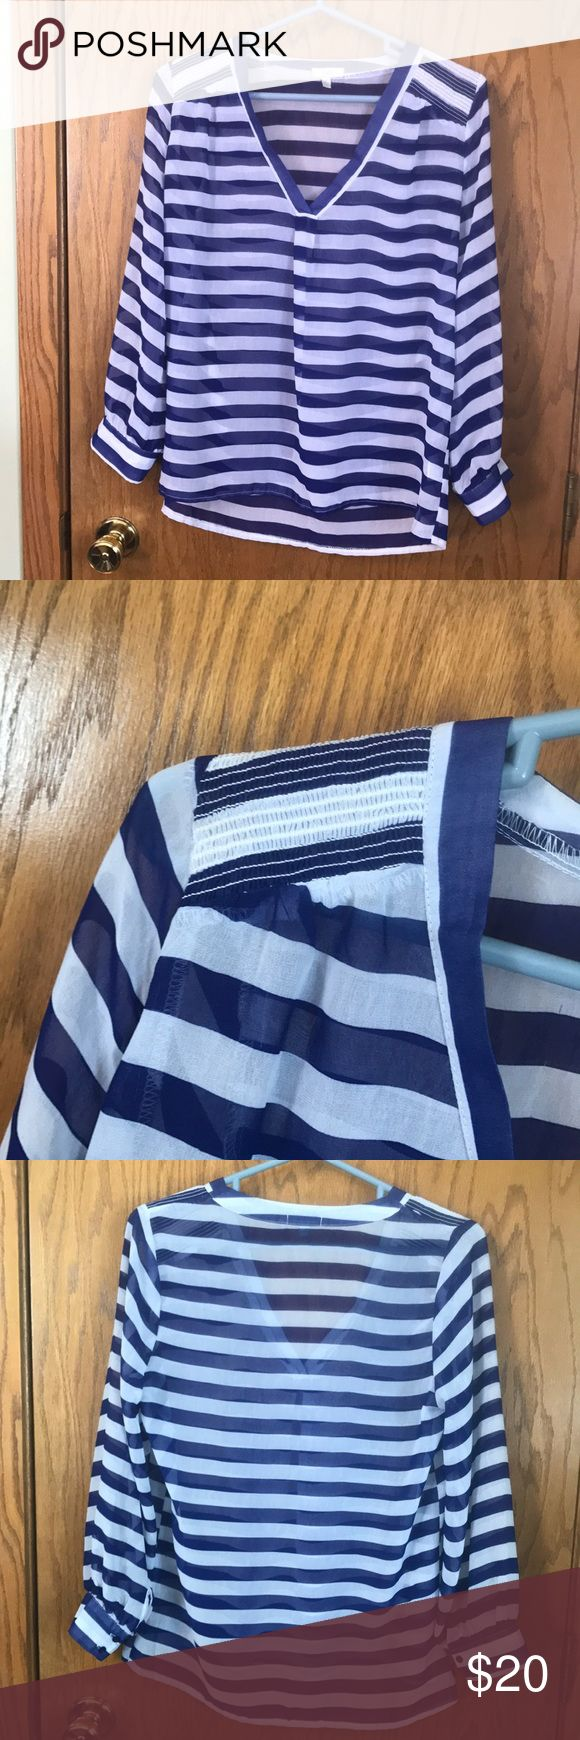 Royal blue and white blouse Blue and white v-neck striped blouse. Super cute layered over a white cami. Fate Tops Blouses